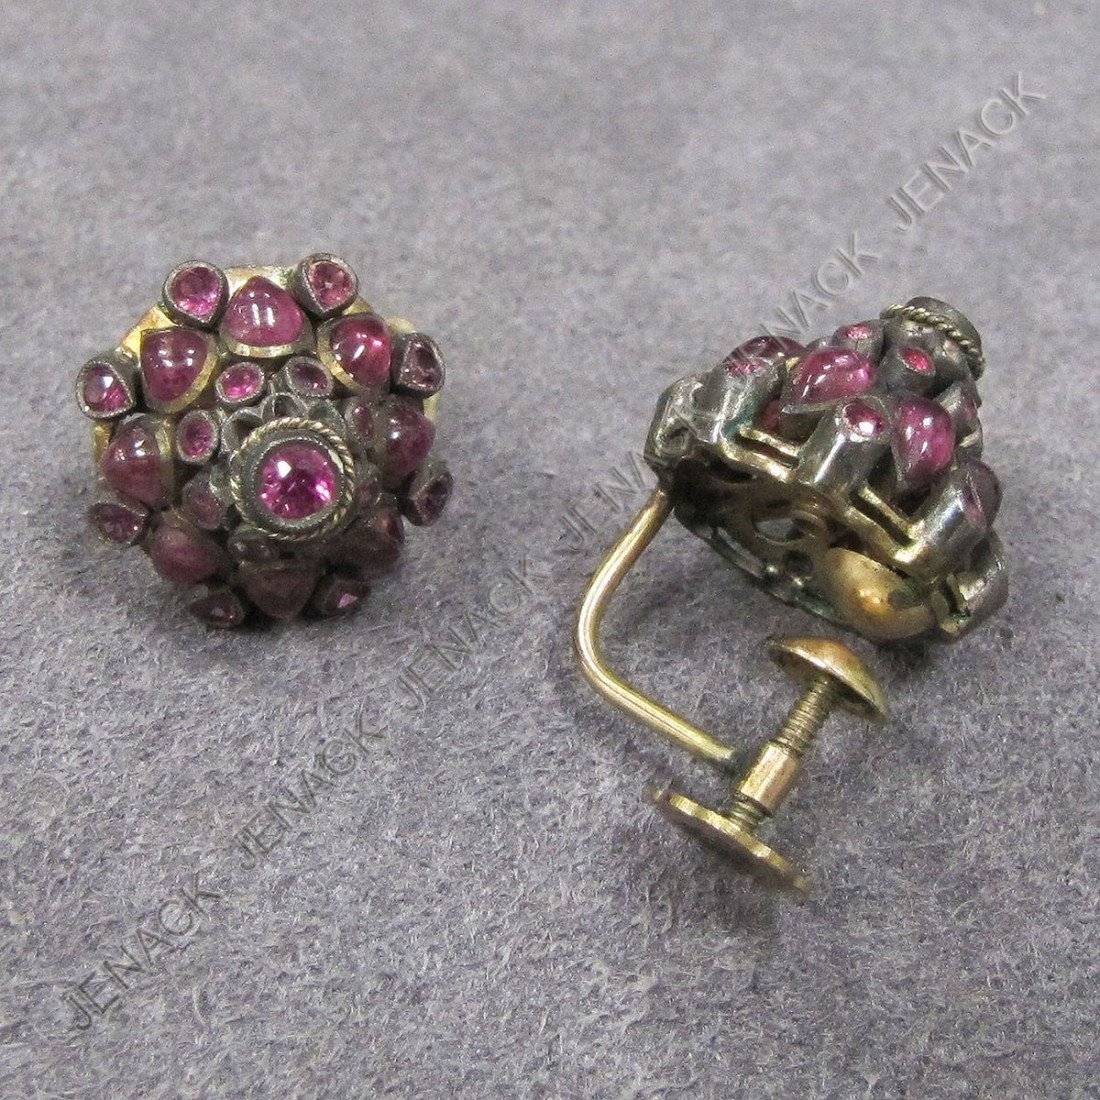 72: GOLD, SILVER AND PINK SAPPHIRE EARRINGS